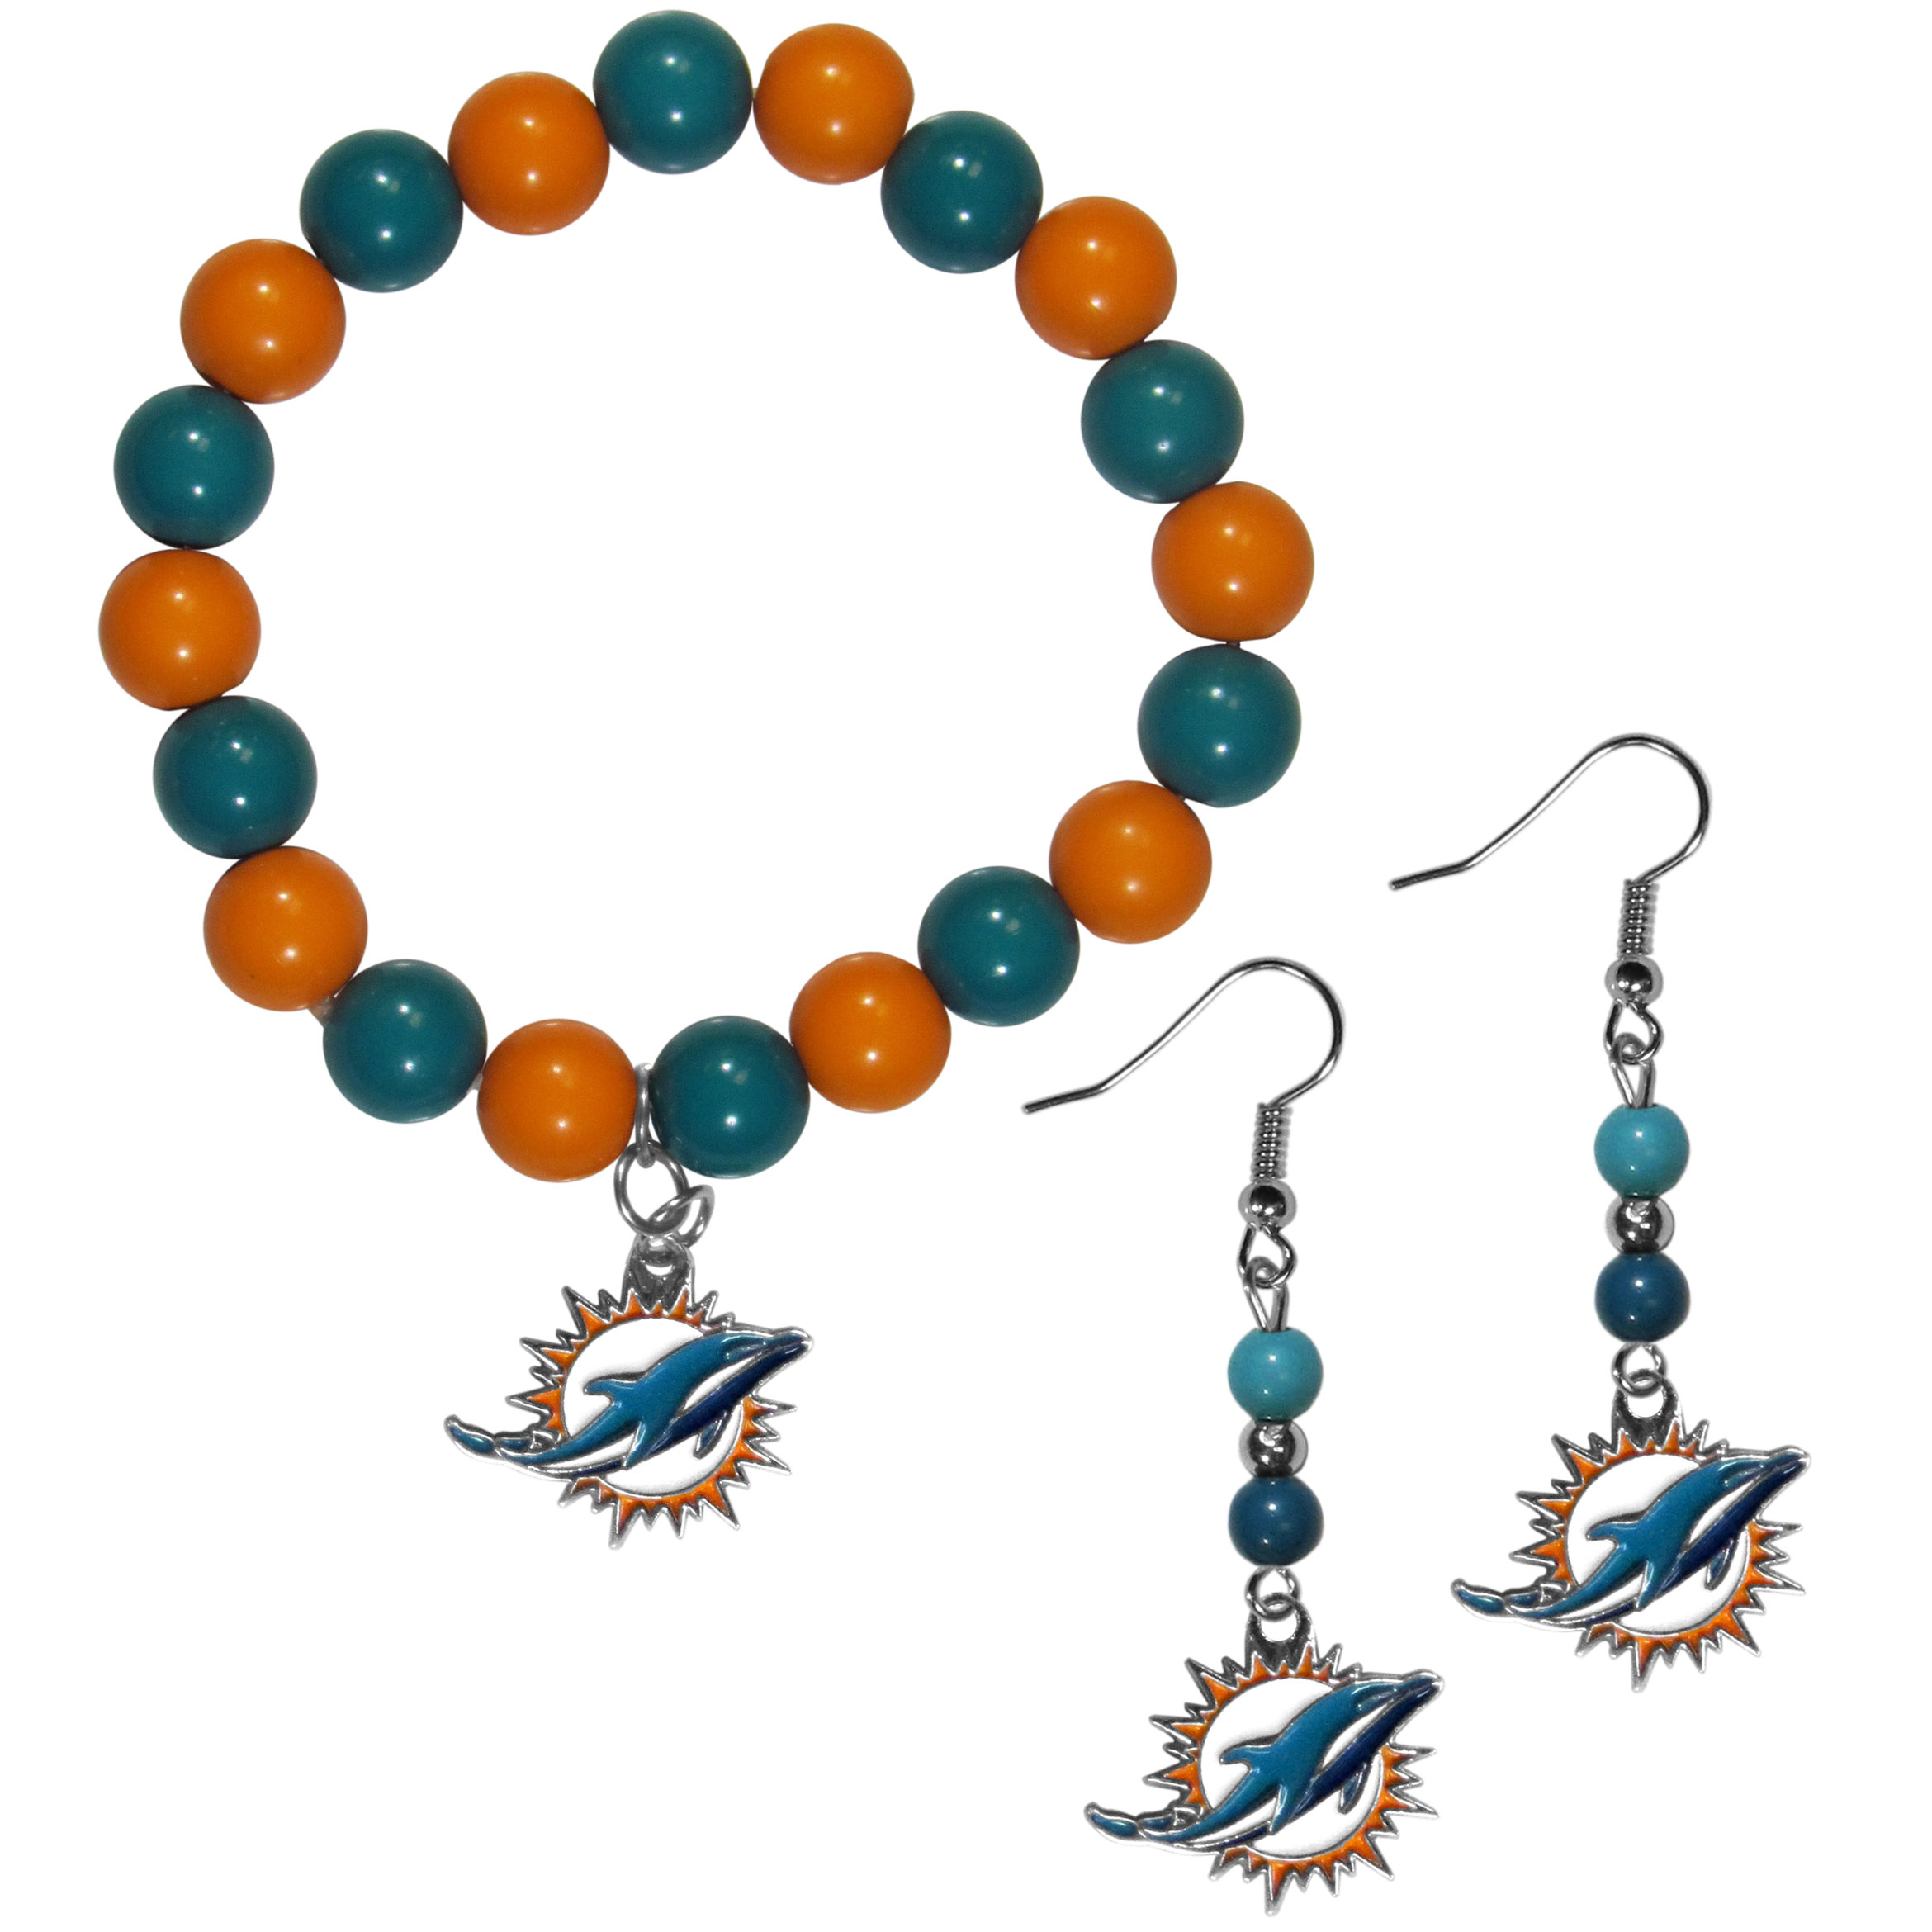 Miami Dolphins Fan Bead Earrings and Bracelet Set - This fun and colorful Miami Dolphins fan bead jewelry set is fun and casual with eye-catching beads in bright team colors. The fashionable dangle earrings feature a team colored beads that drop down to a carved and enameled charm. The stretch bracelet has larger matching beads that make a striking statement and have a matching team charm. These sassy yet sporty jewelry pieces make a perfect gift for any female fan. Spice up your game-day outfit with these fun colorful earrings and bracelet that are also cute enough for any day.